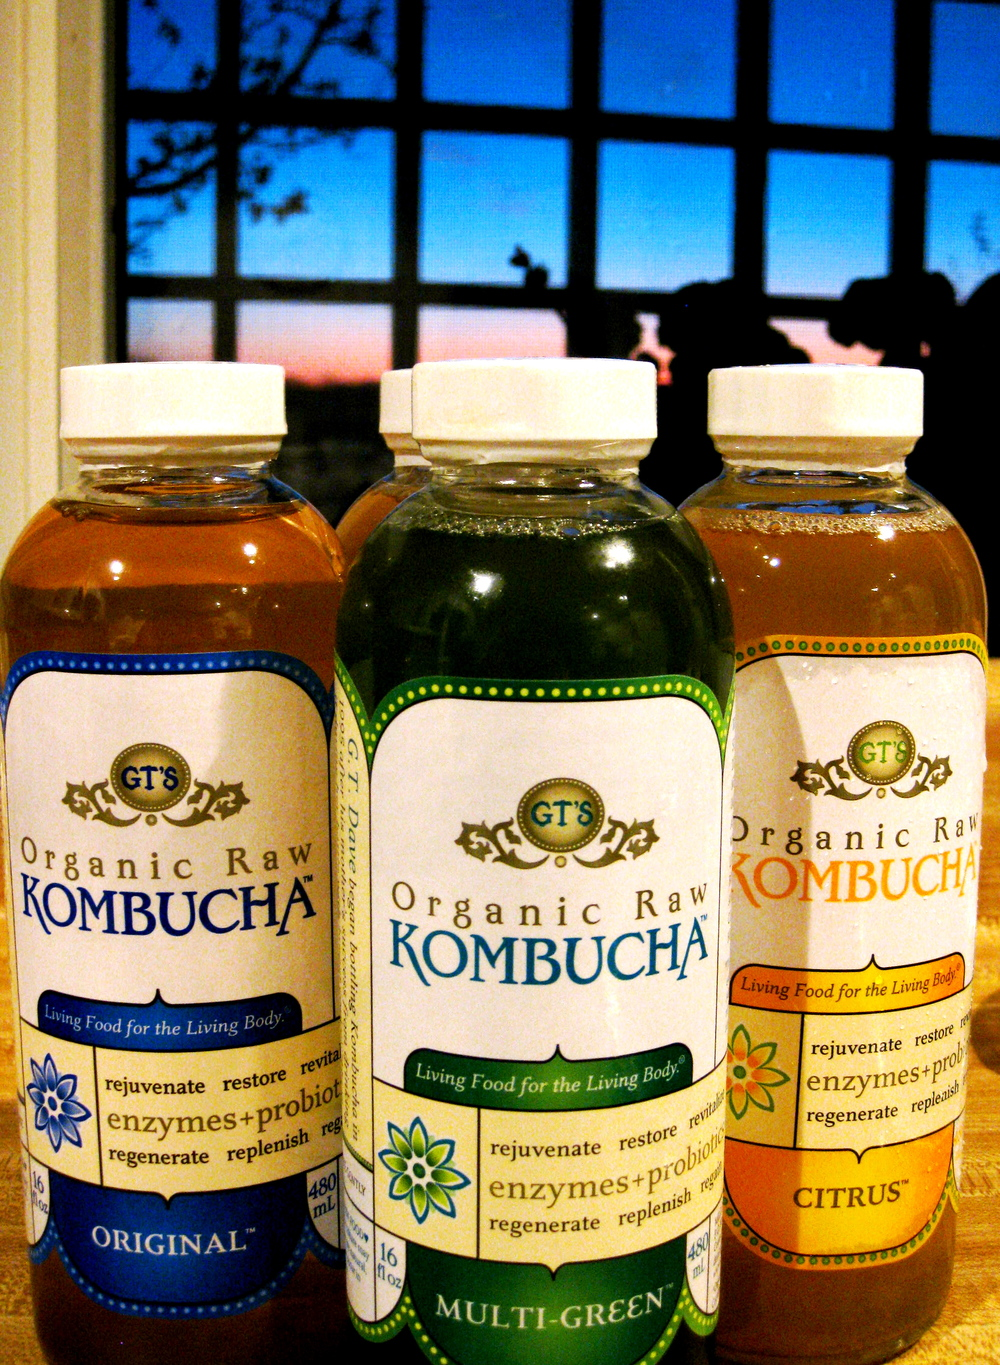 Kombucha can be found at local grocery stores like Publix or Earth Origins.